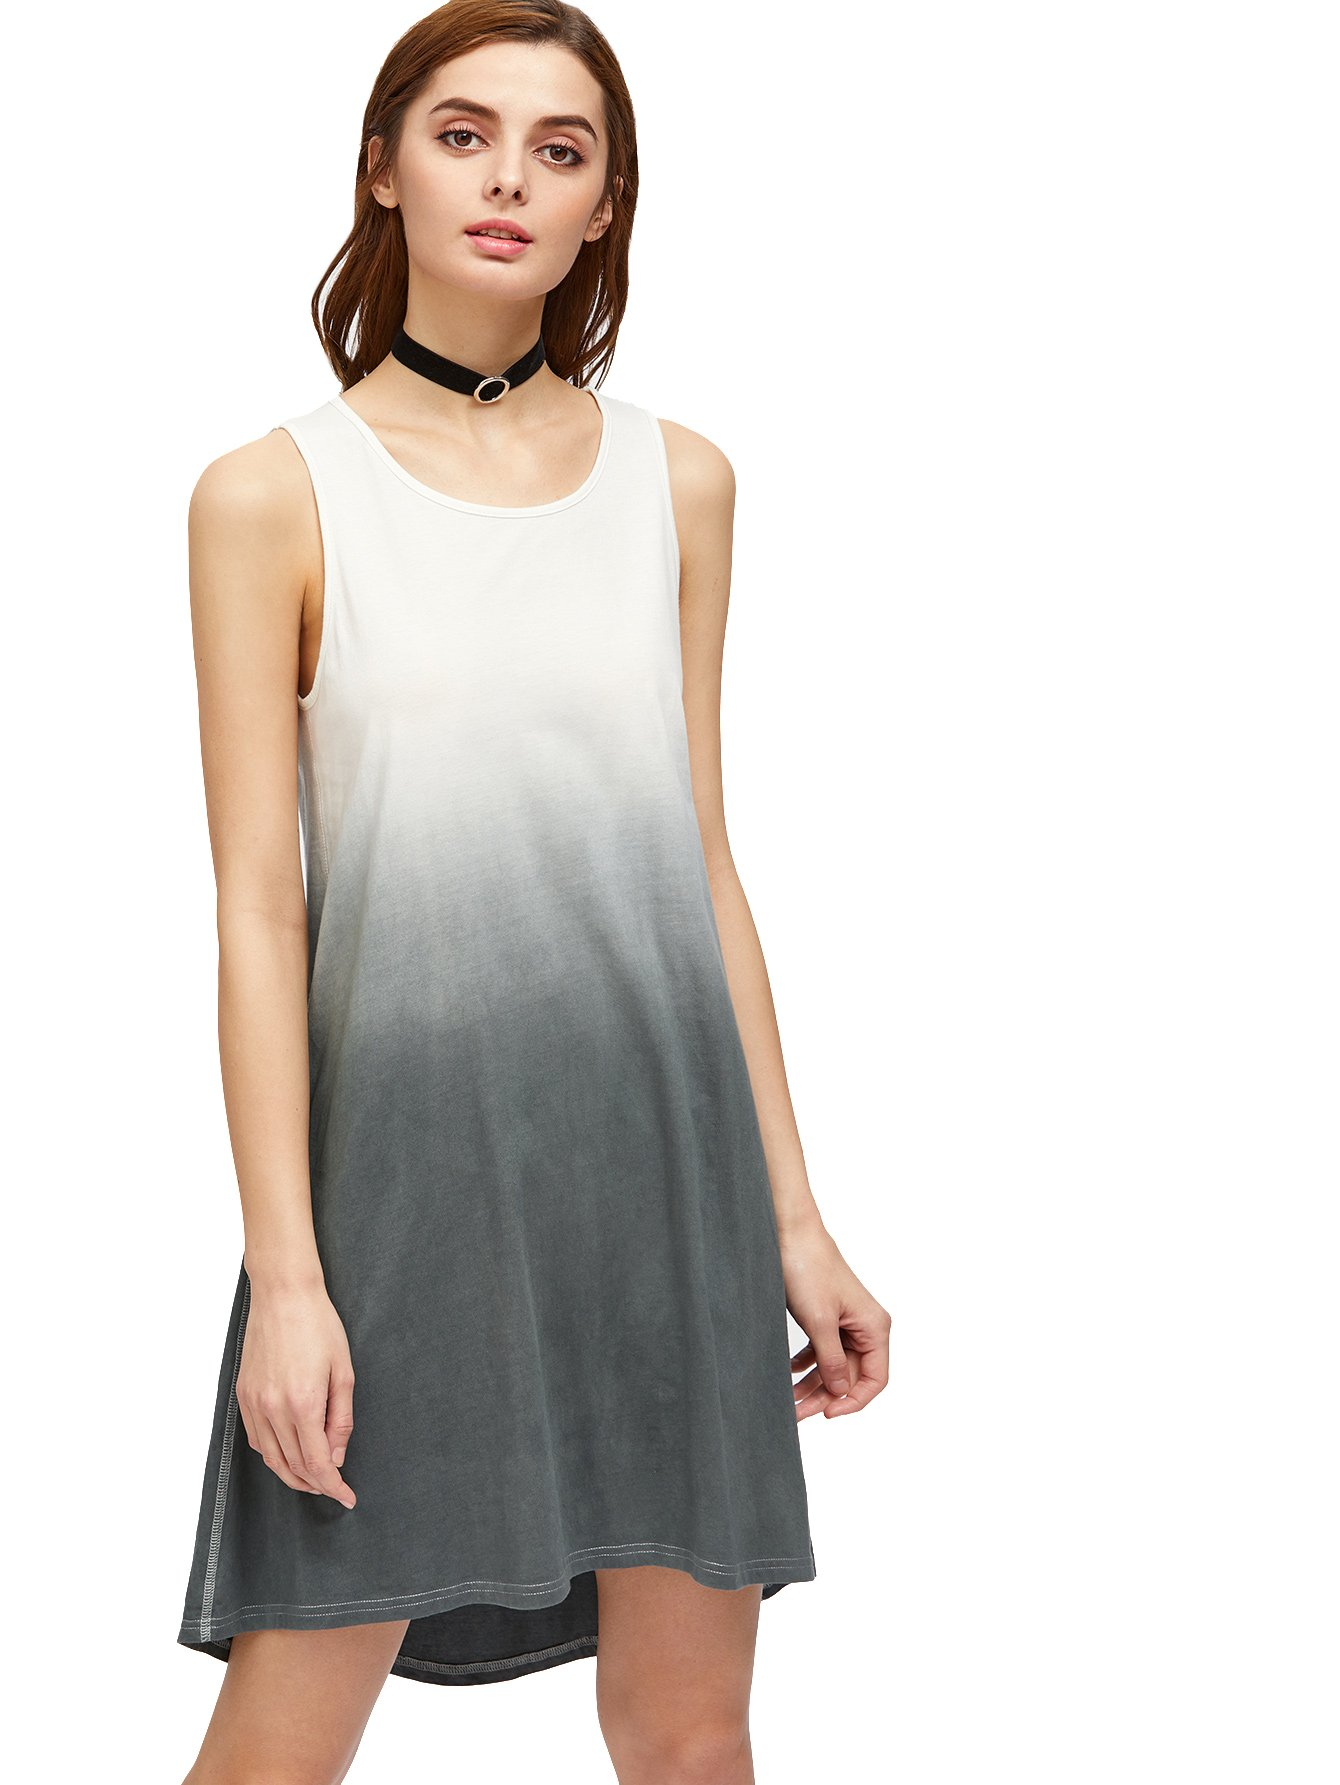 6f5c20961 Galleon - Romwe Women's Tunic Swing T-Shirt Dress Short Sleeve Tie Dye  Ombre Dress (Large, Grey_1)